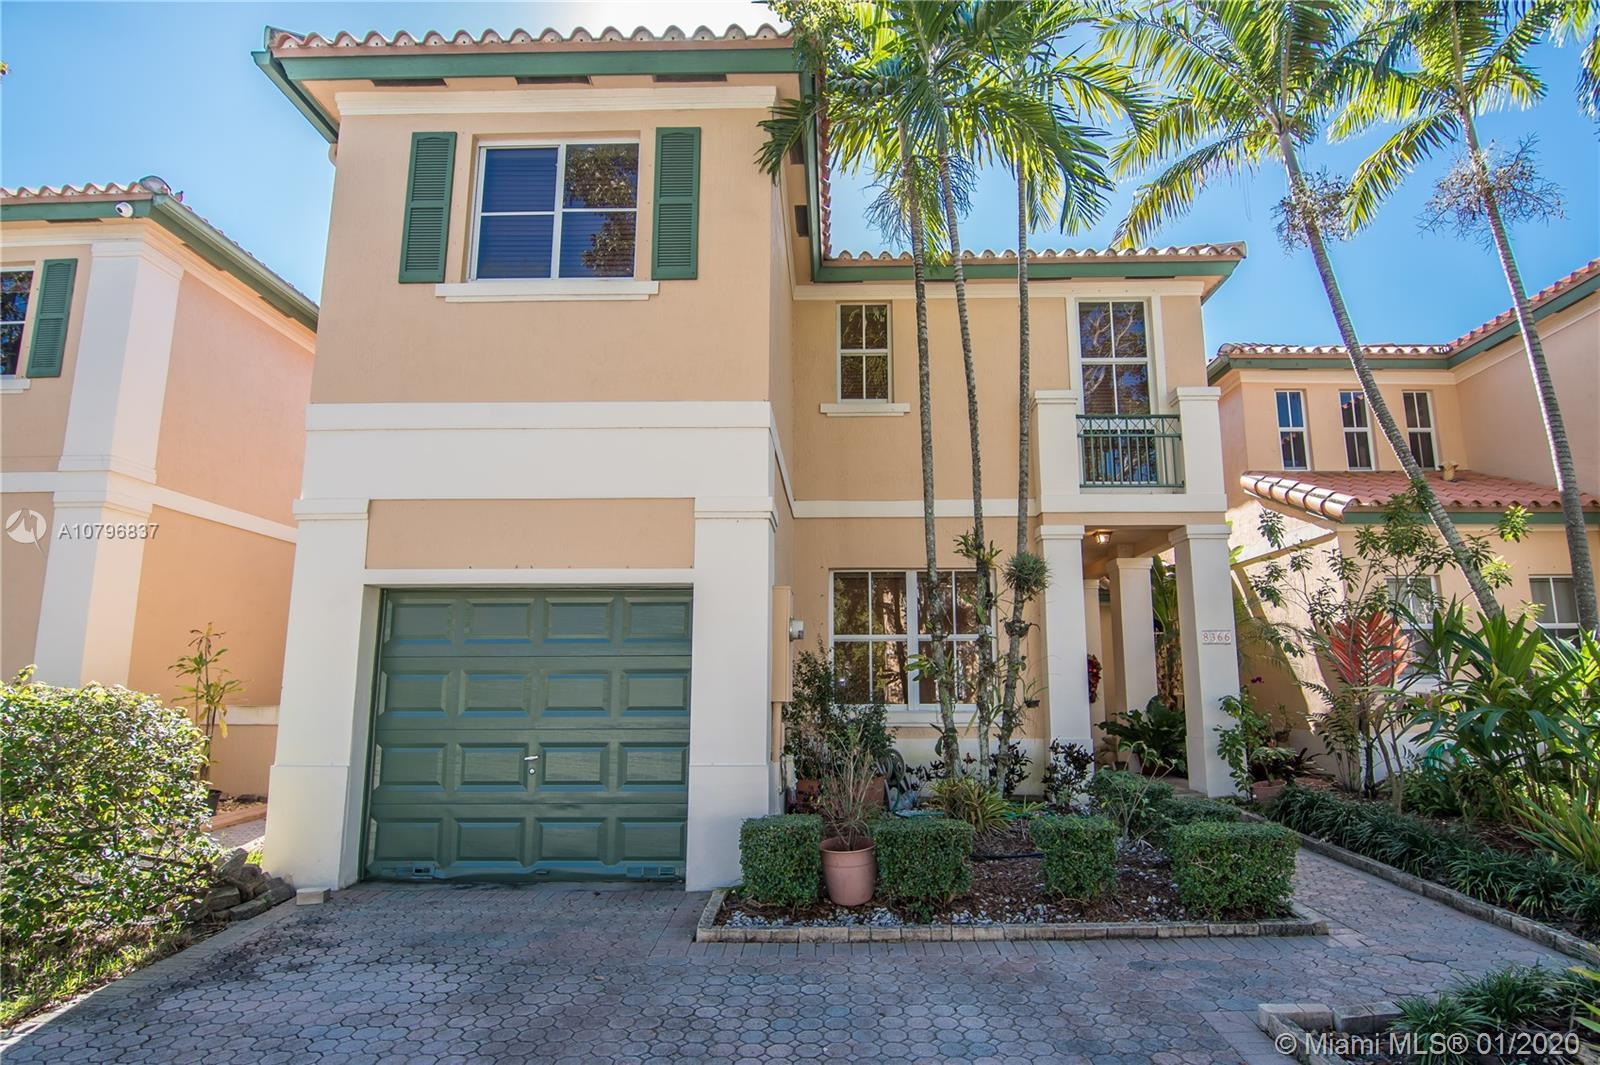 Spectacular home in one of the most prestigious gated communities in Miami Lakes. This beautiful pro